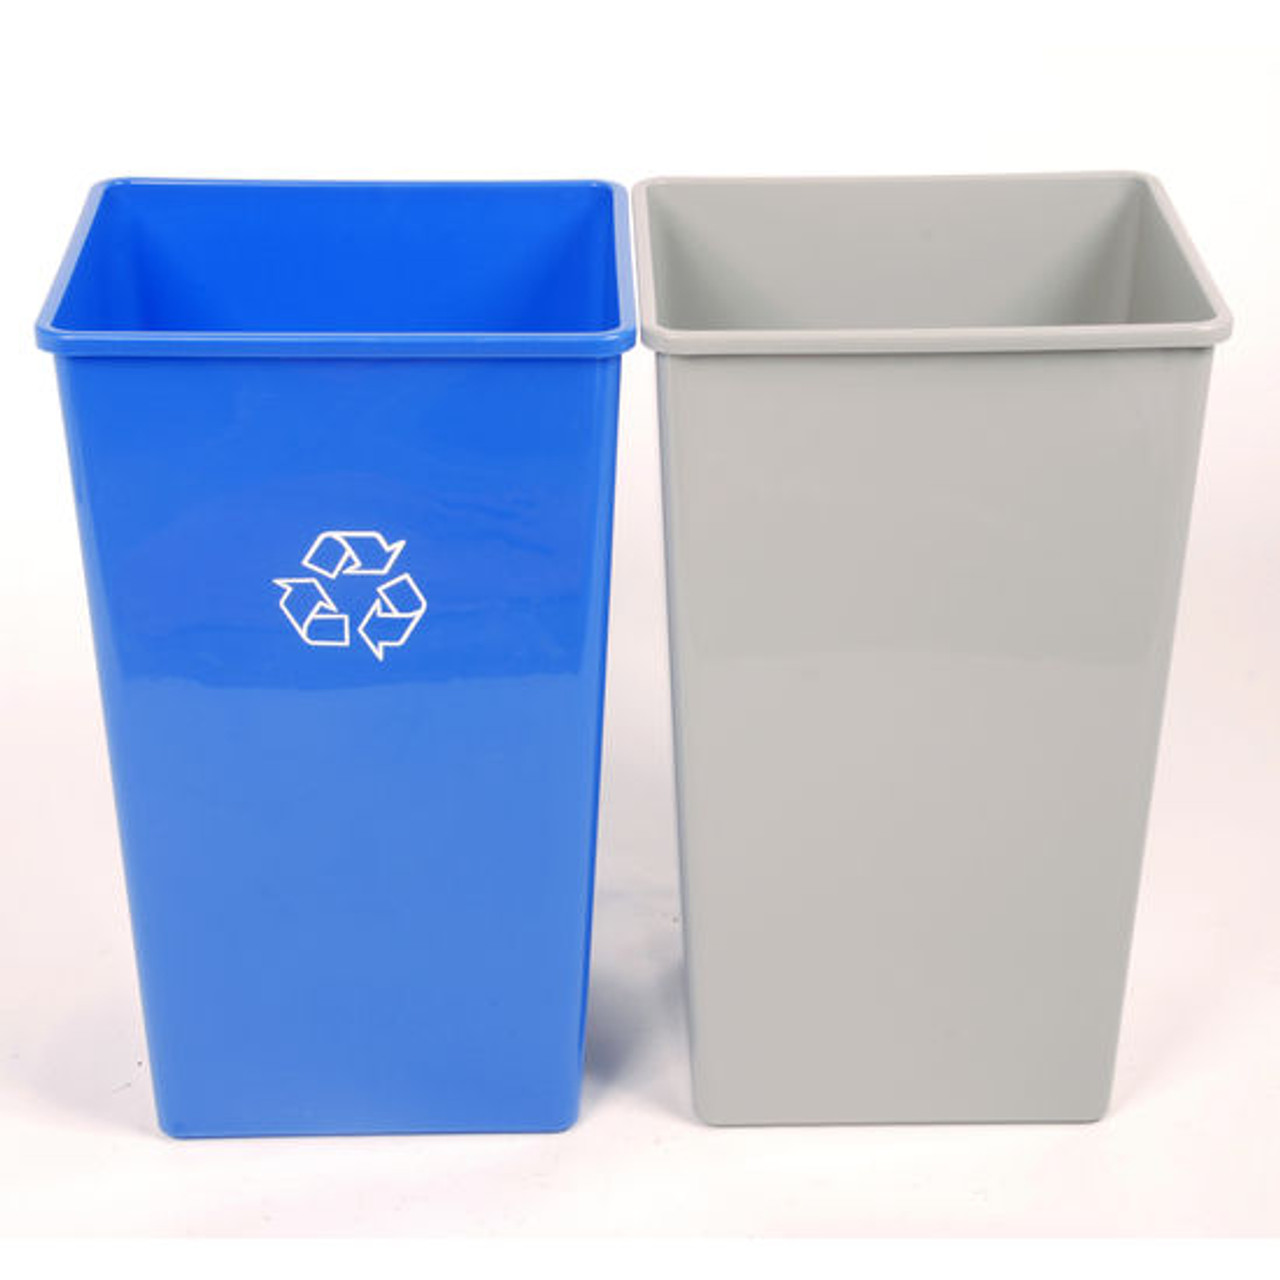 22 Gallon Plastic Indoor Single Stream Recycling Bin or Trash Can SSB22